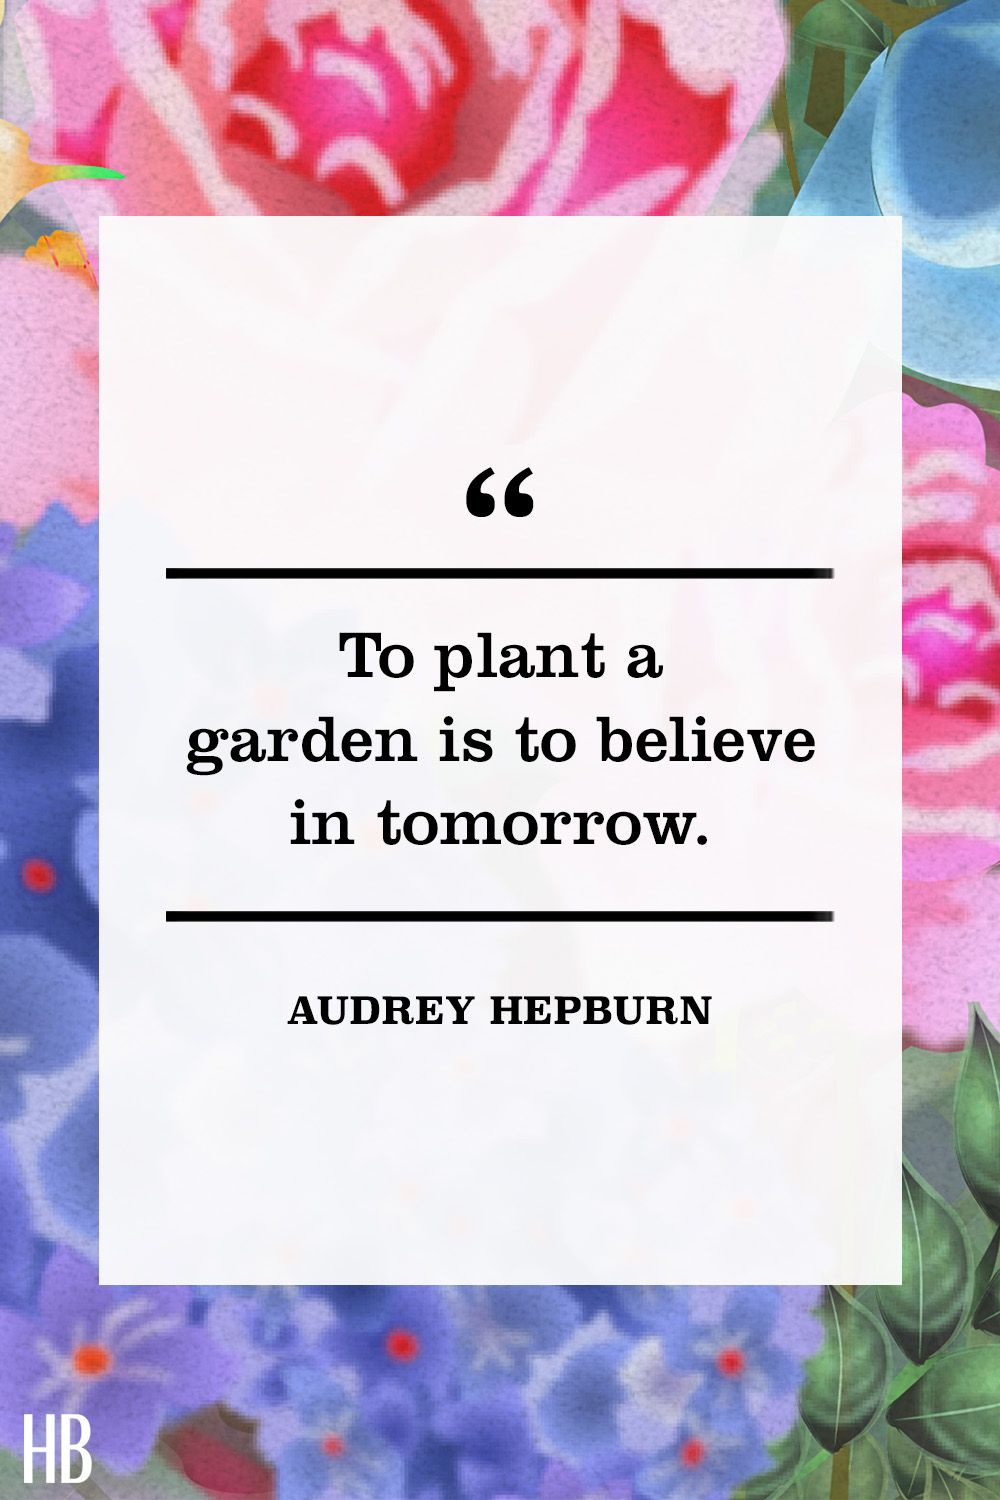 audrey hepburn​ easter quote